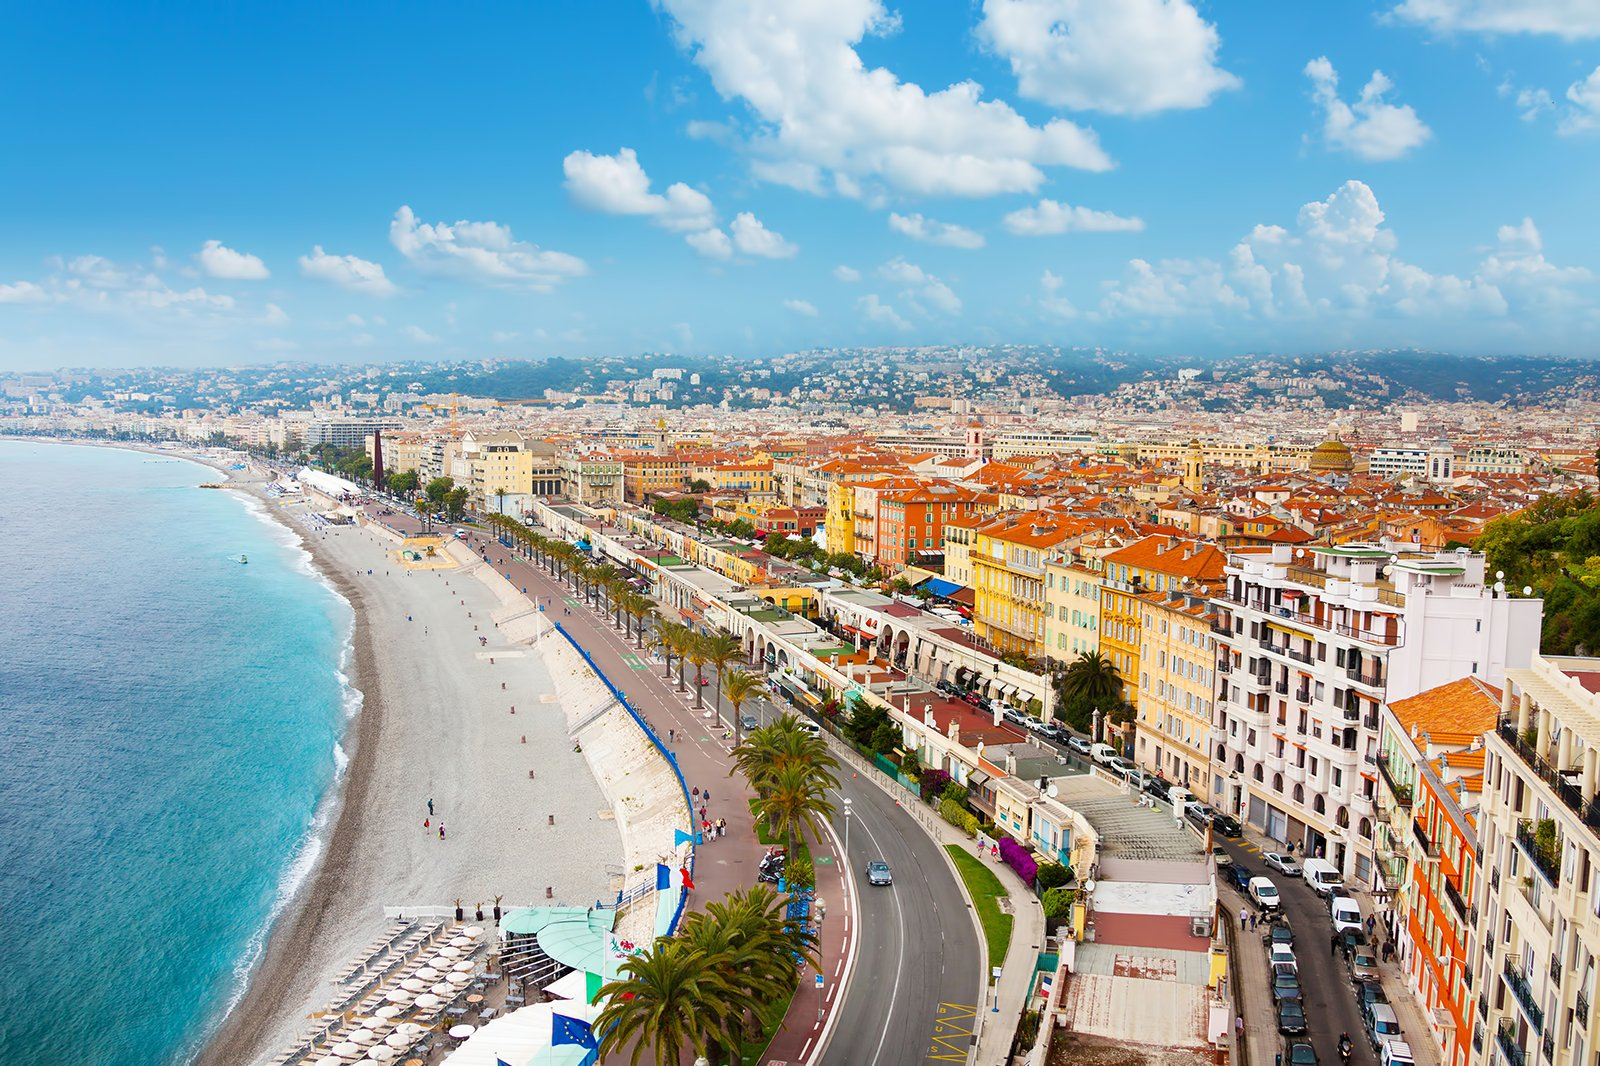 Les Corniches on the French Riviera - A Scenic Road Trip in the South of France – Go Guides